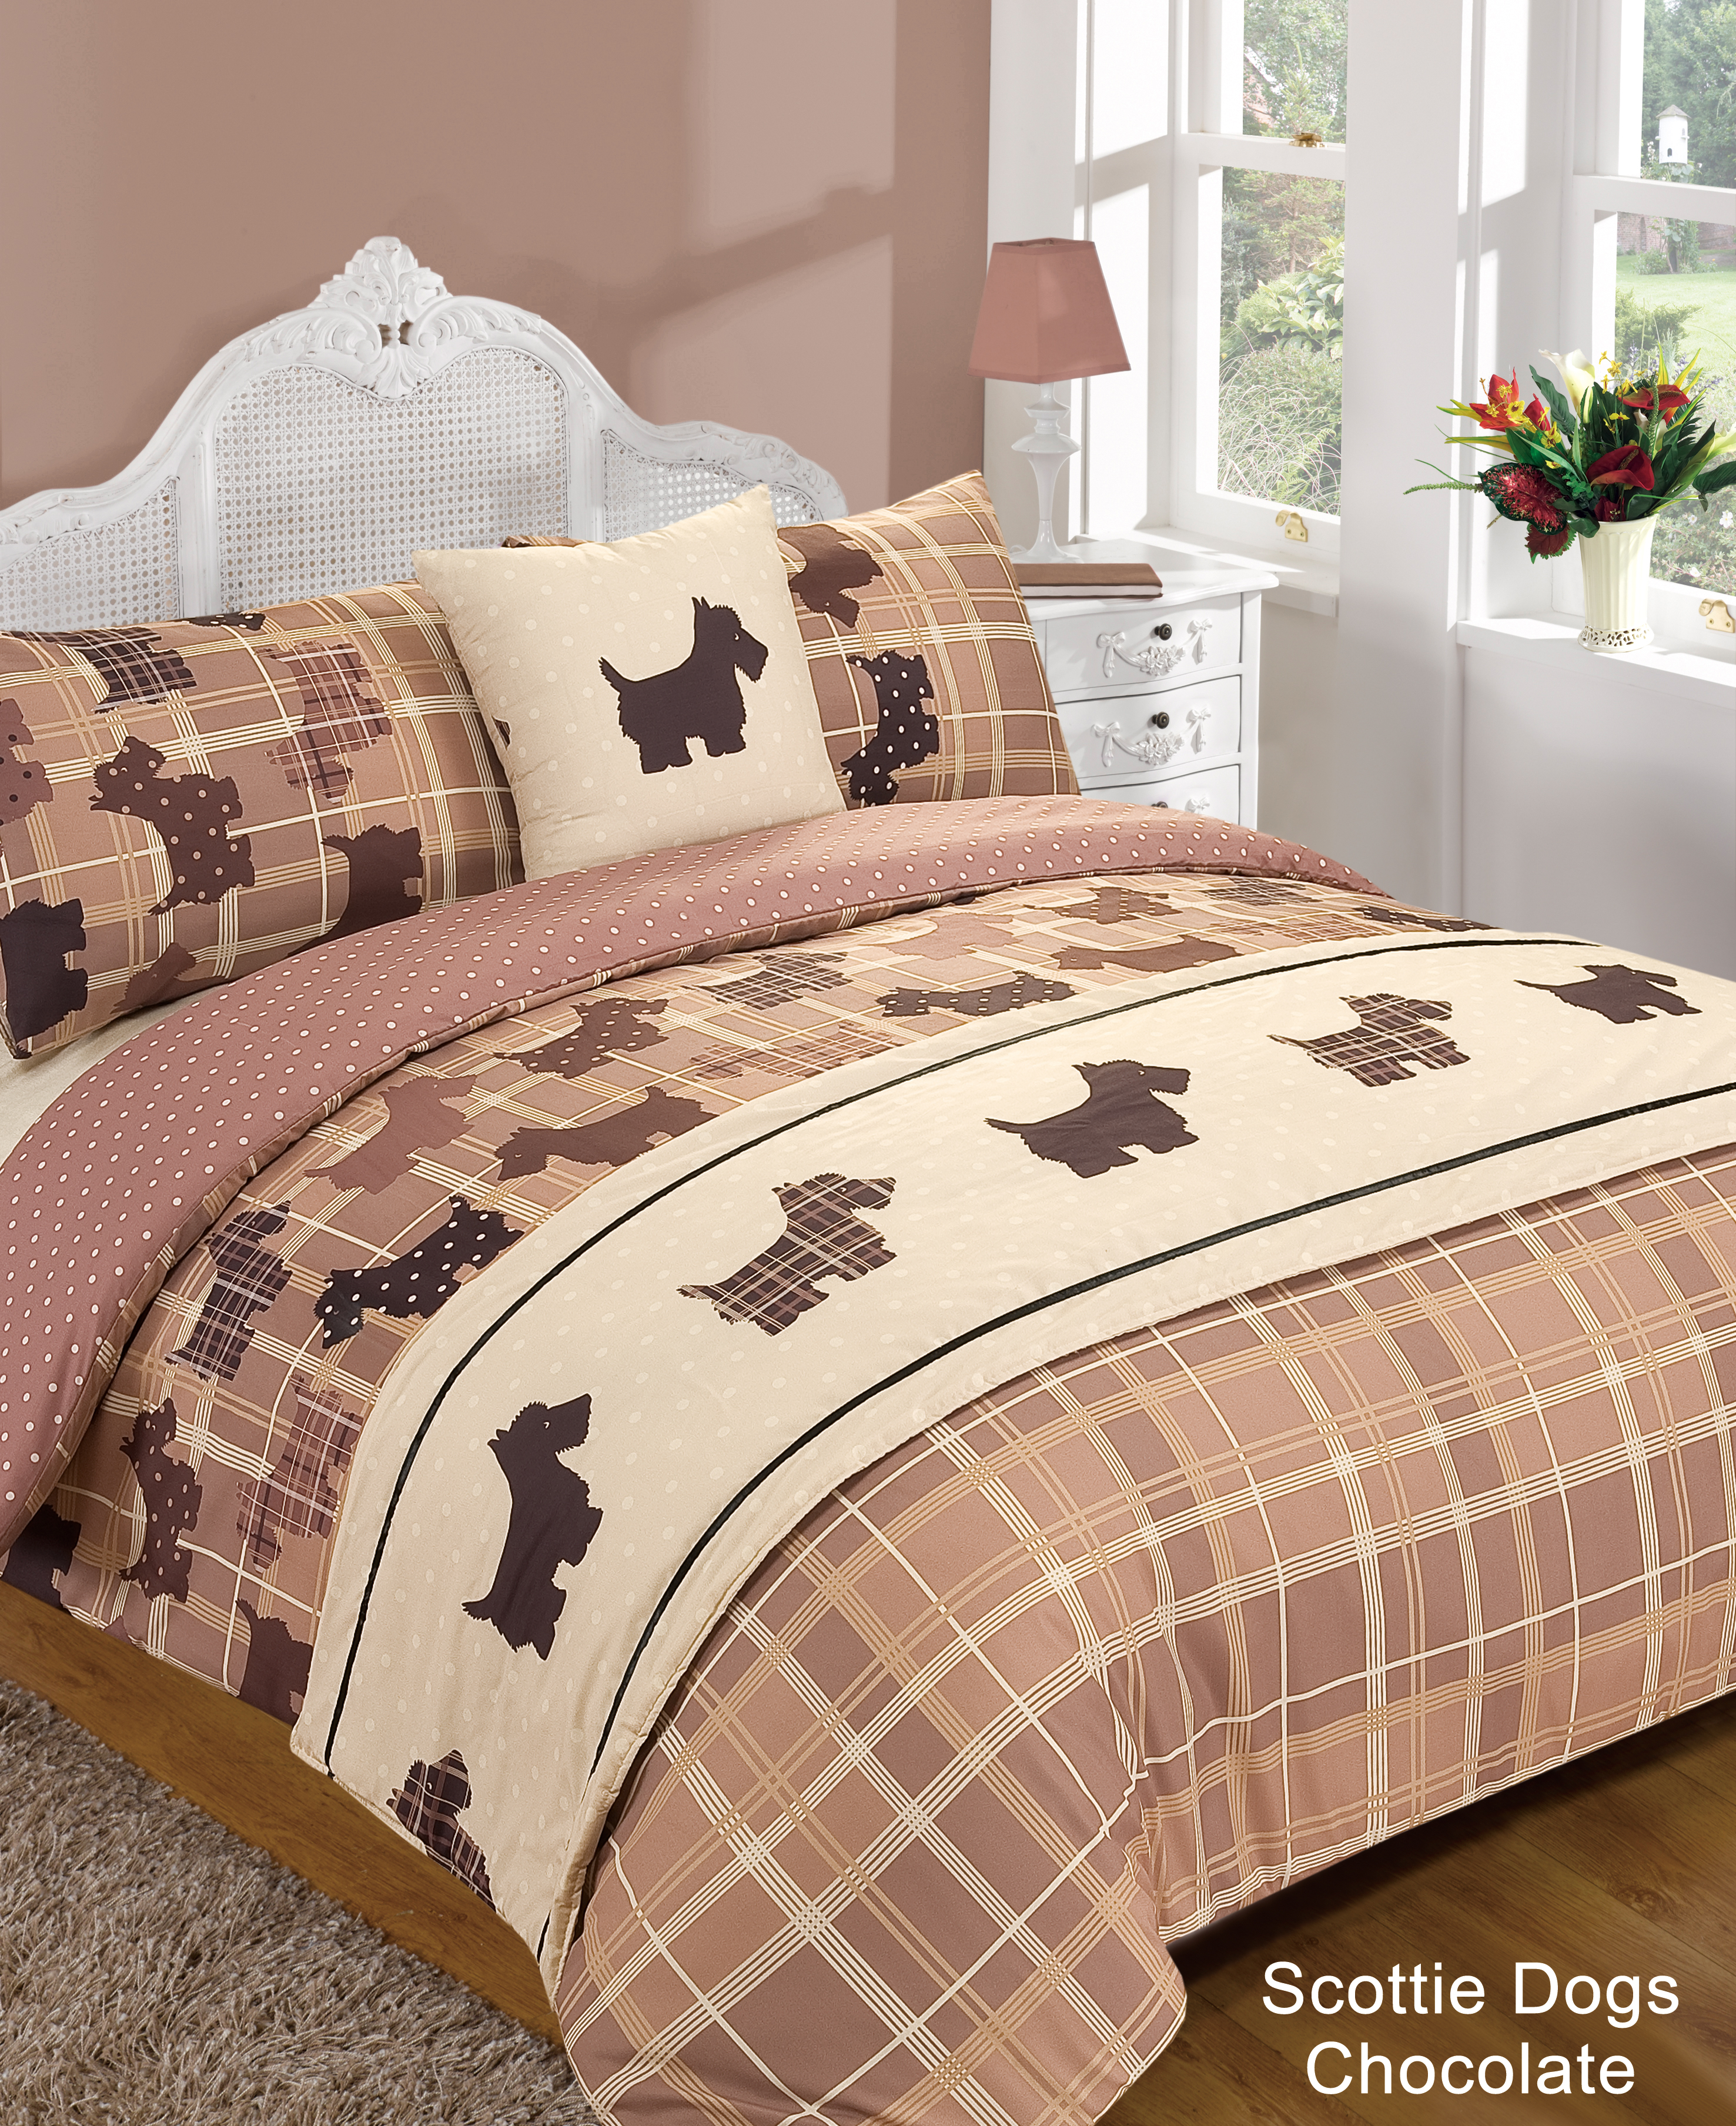 image comforter king camo bag latest set for in a coordinated of orange comforters walmart regarding camoflauge decoration bed kids mainstays